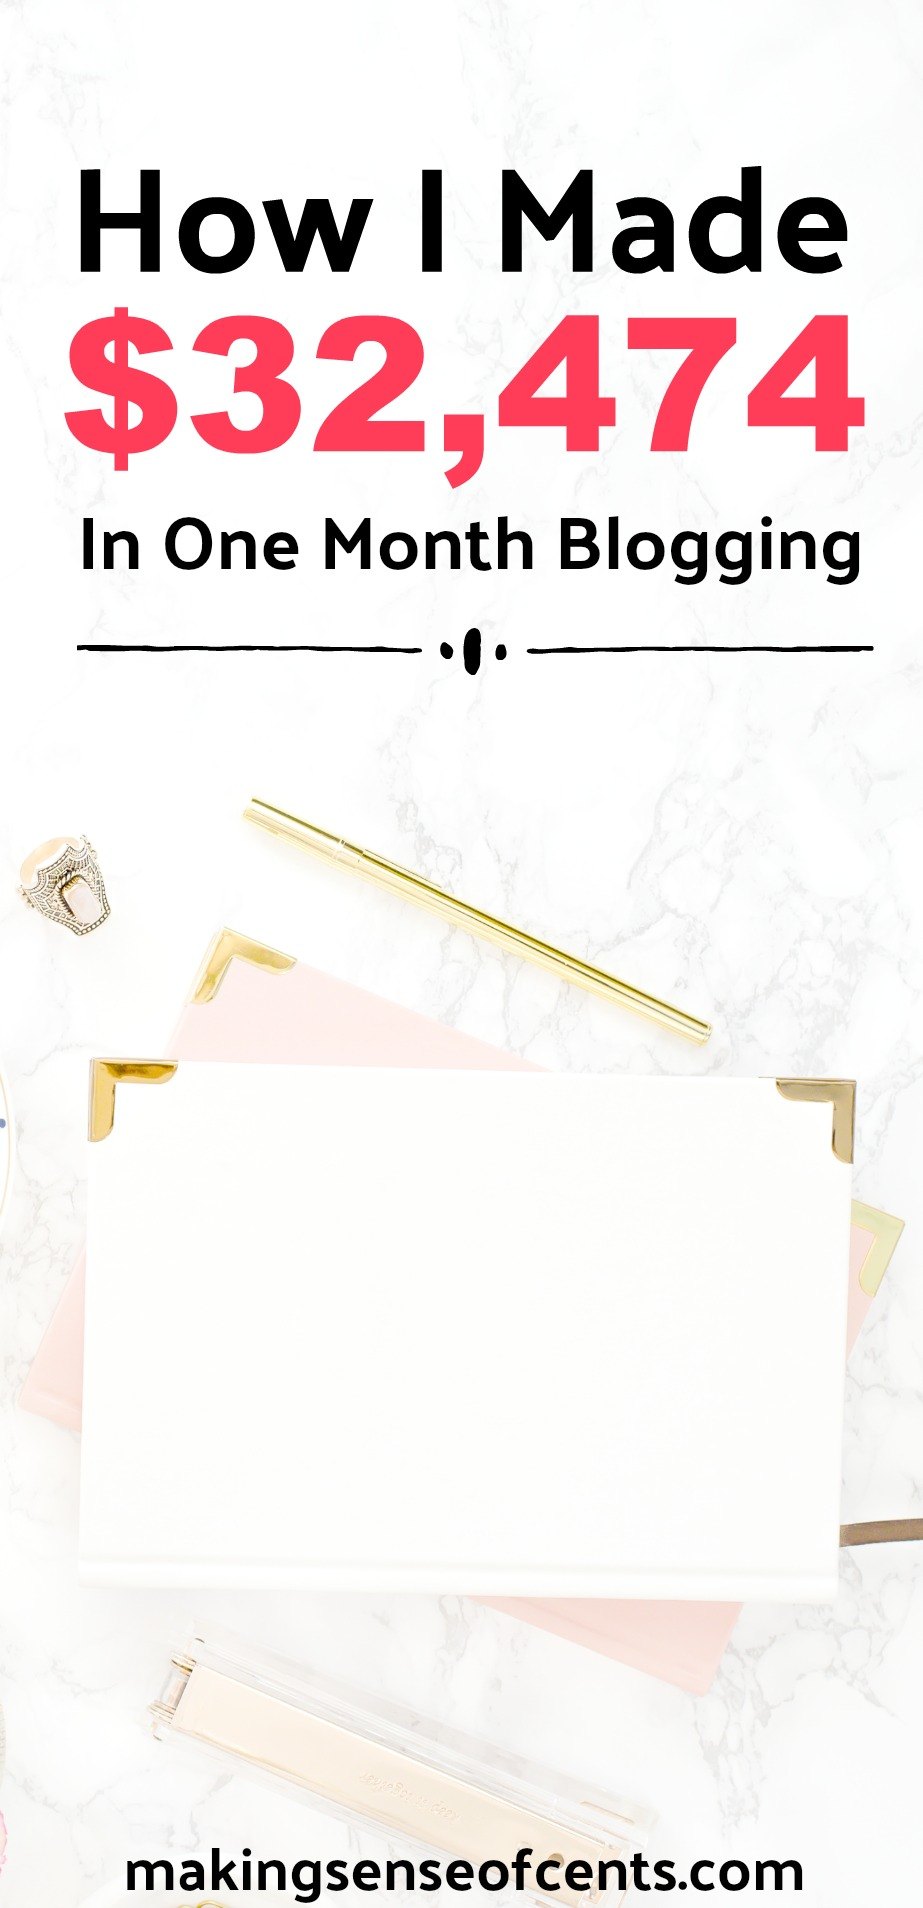 Find out how I made over $30,000 in one month blogging!